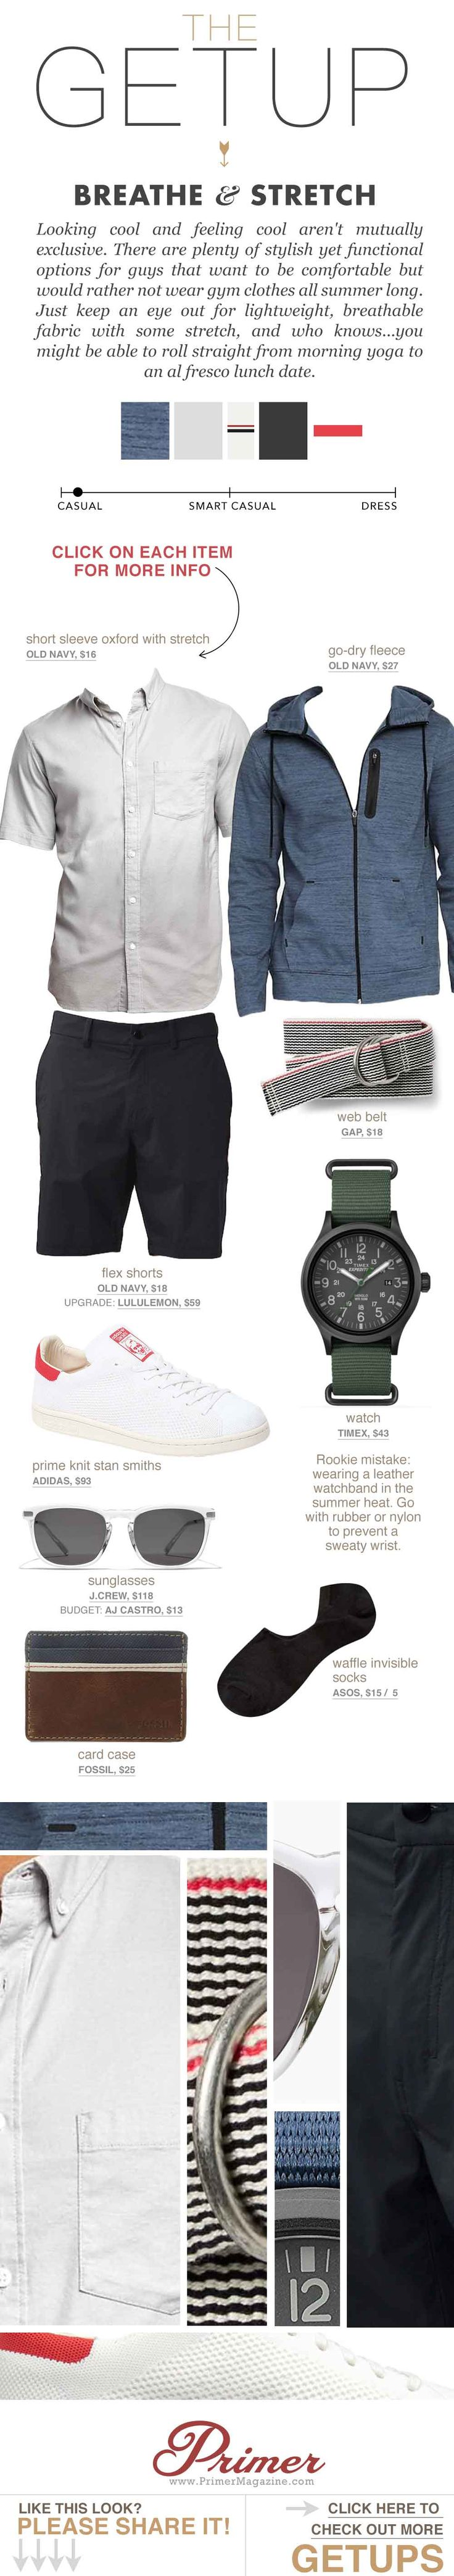 The Getup x Primer. Style for Guys. #menswear